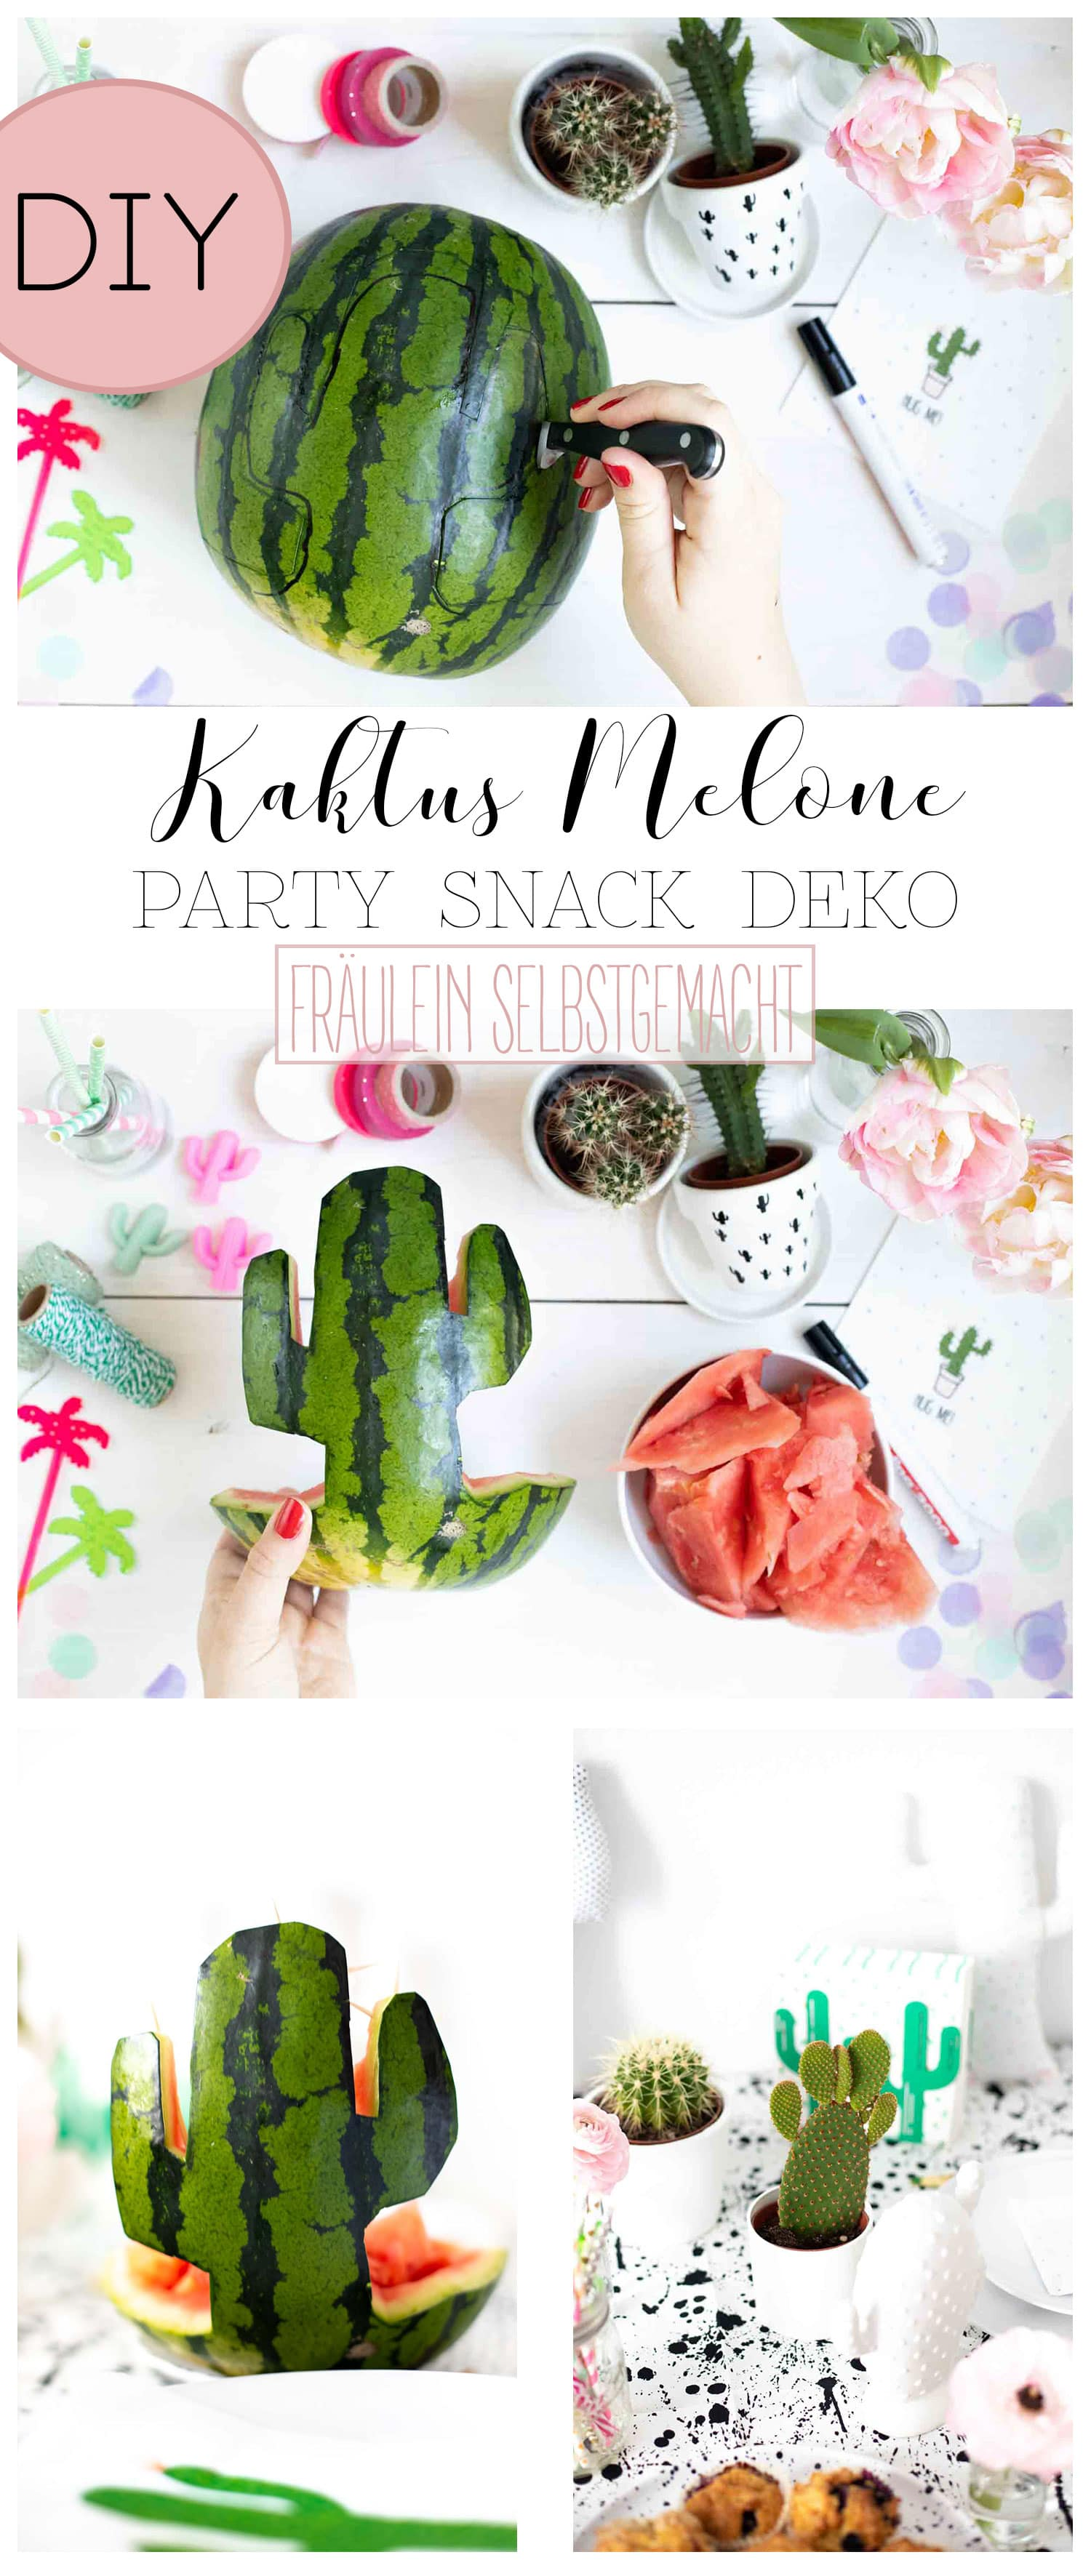 kaktus_melone_party_snack_diy